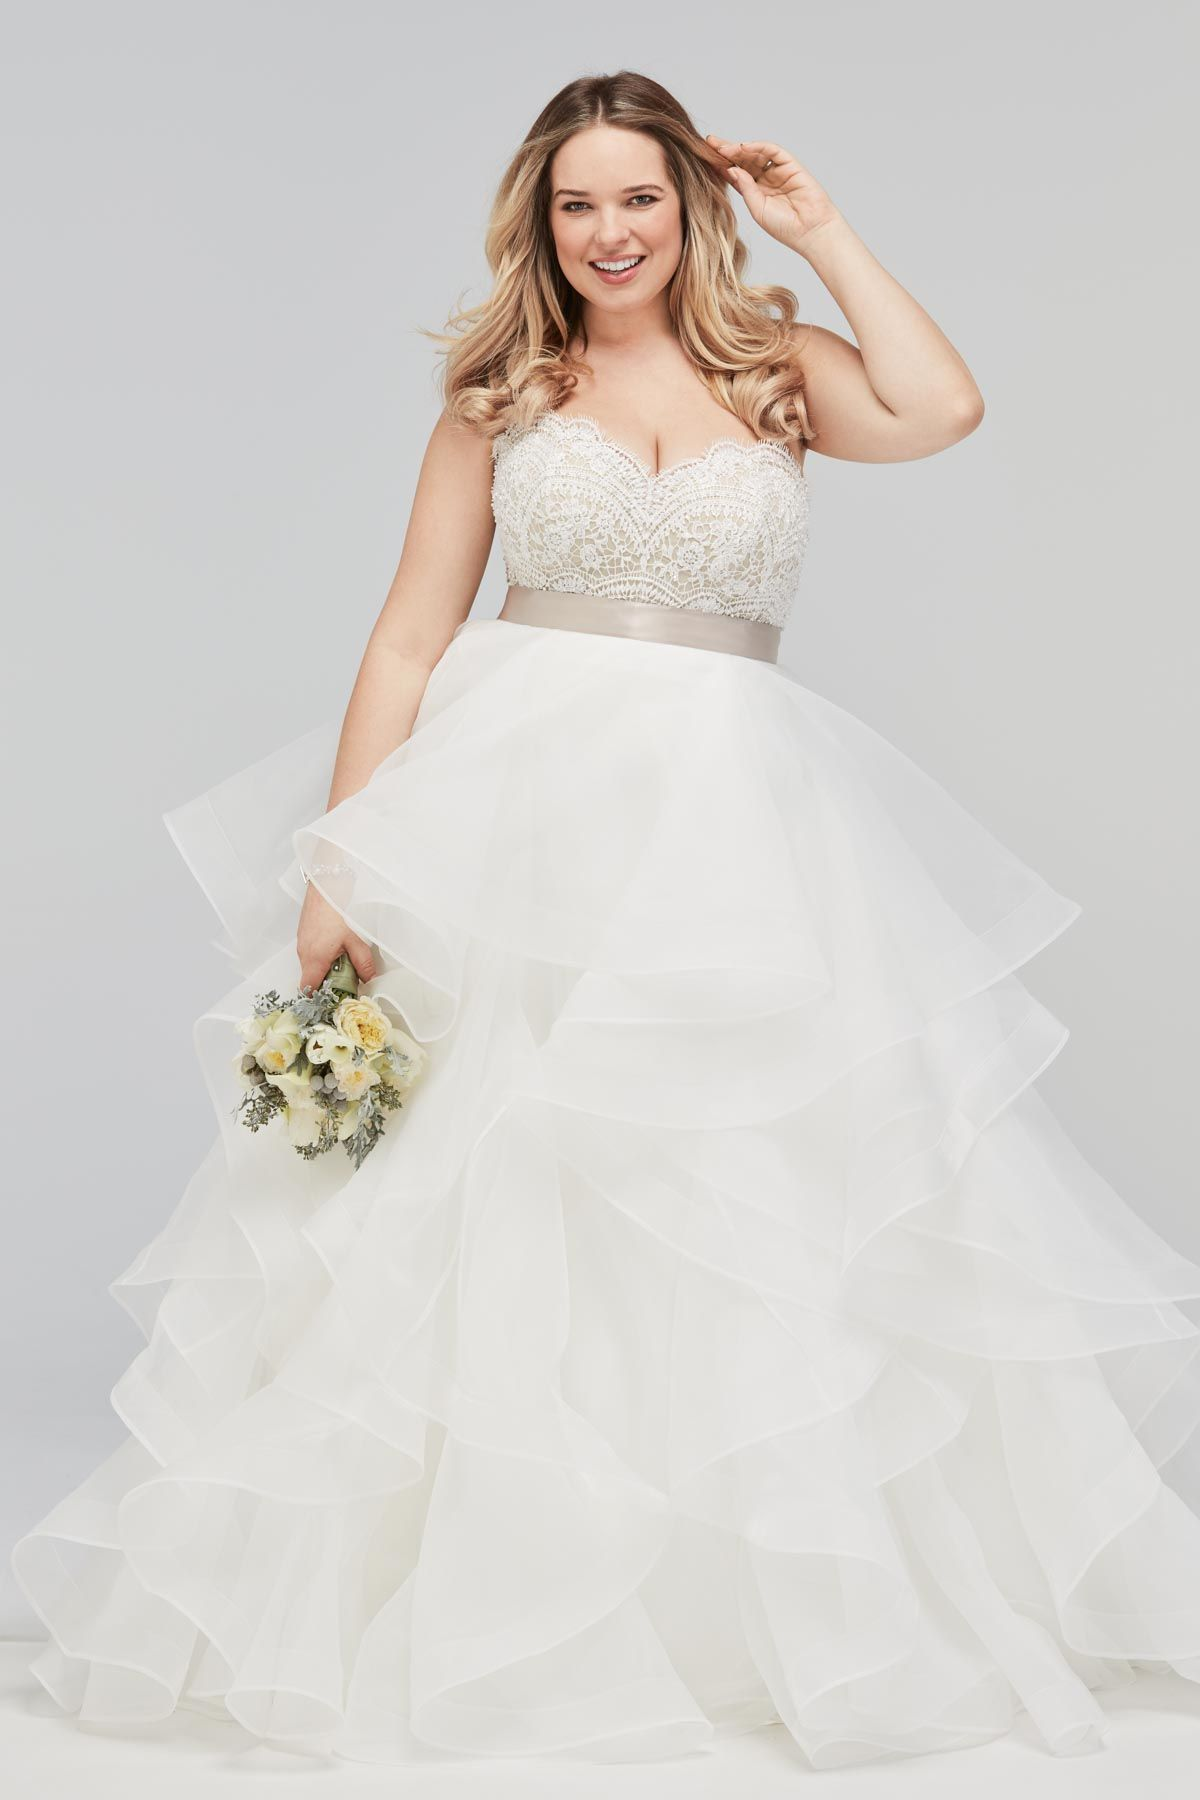 Plus Size Bridal Gown - the Bree Corset with the Almira Skirt by ...